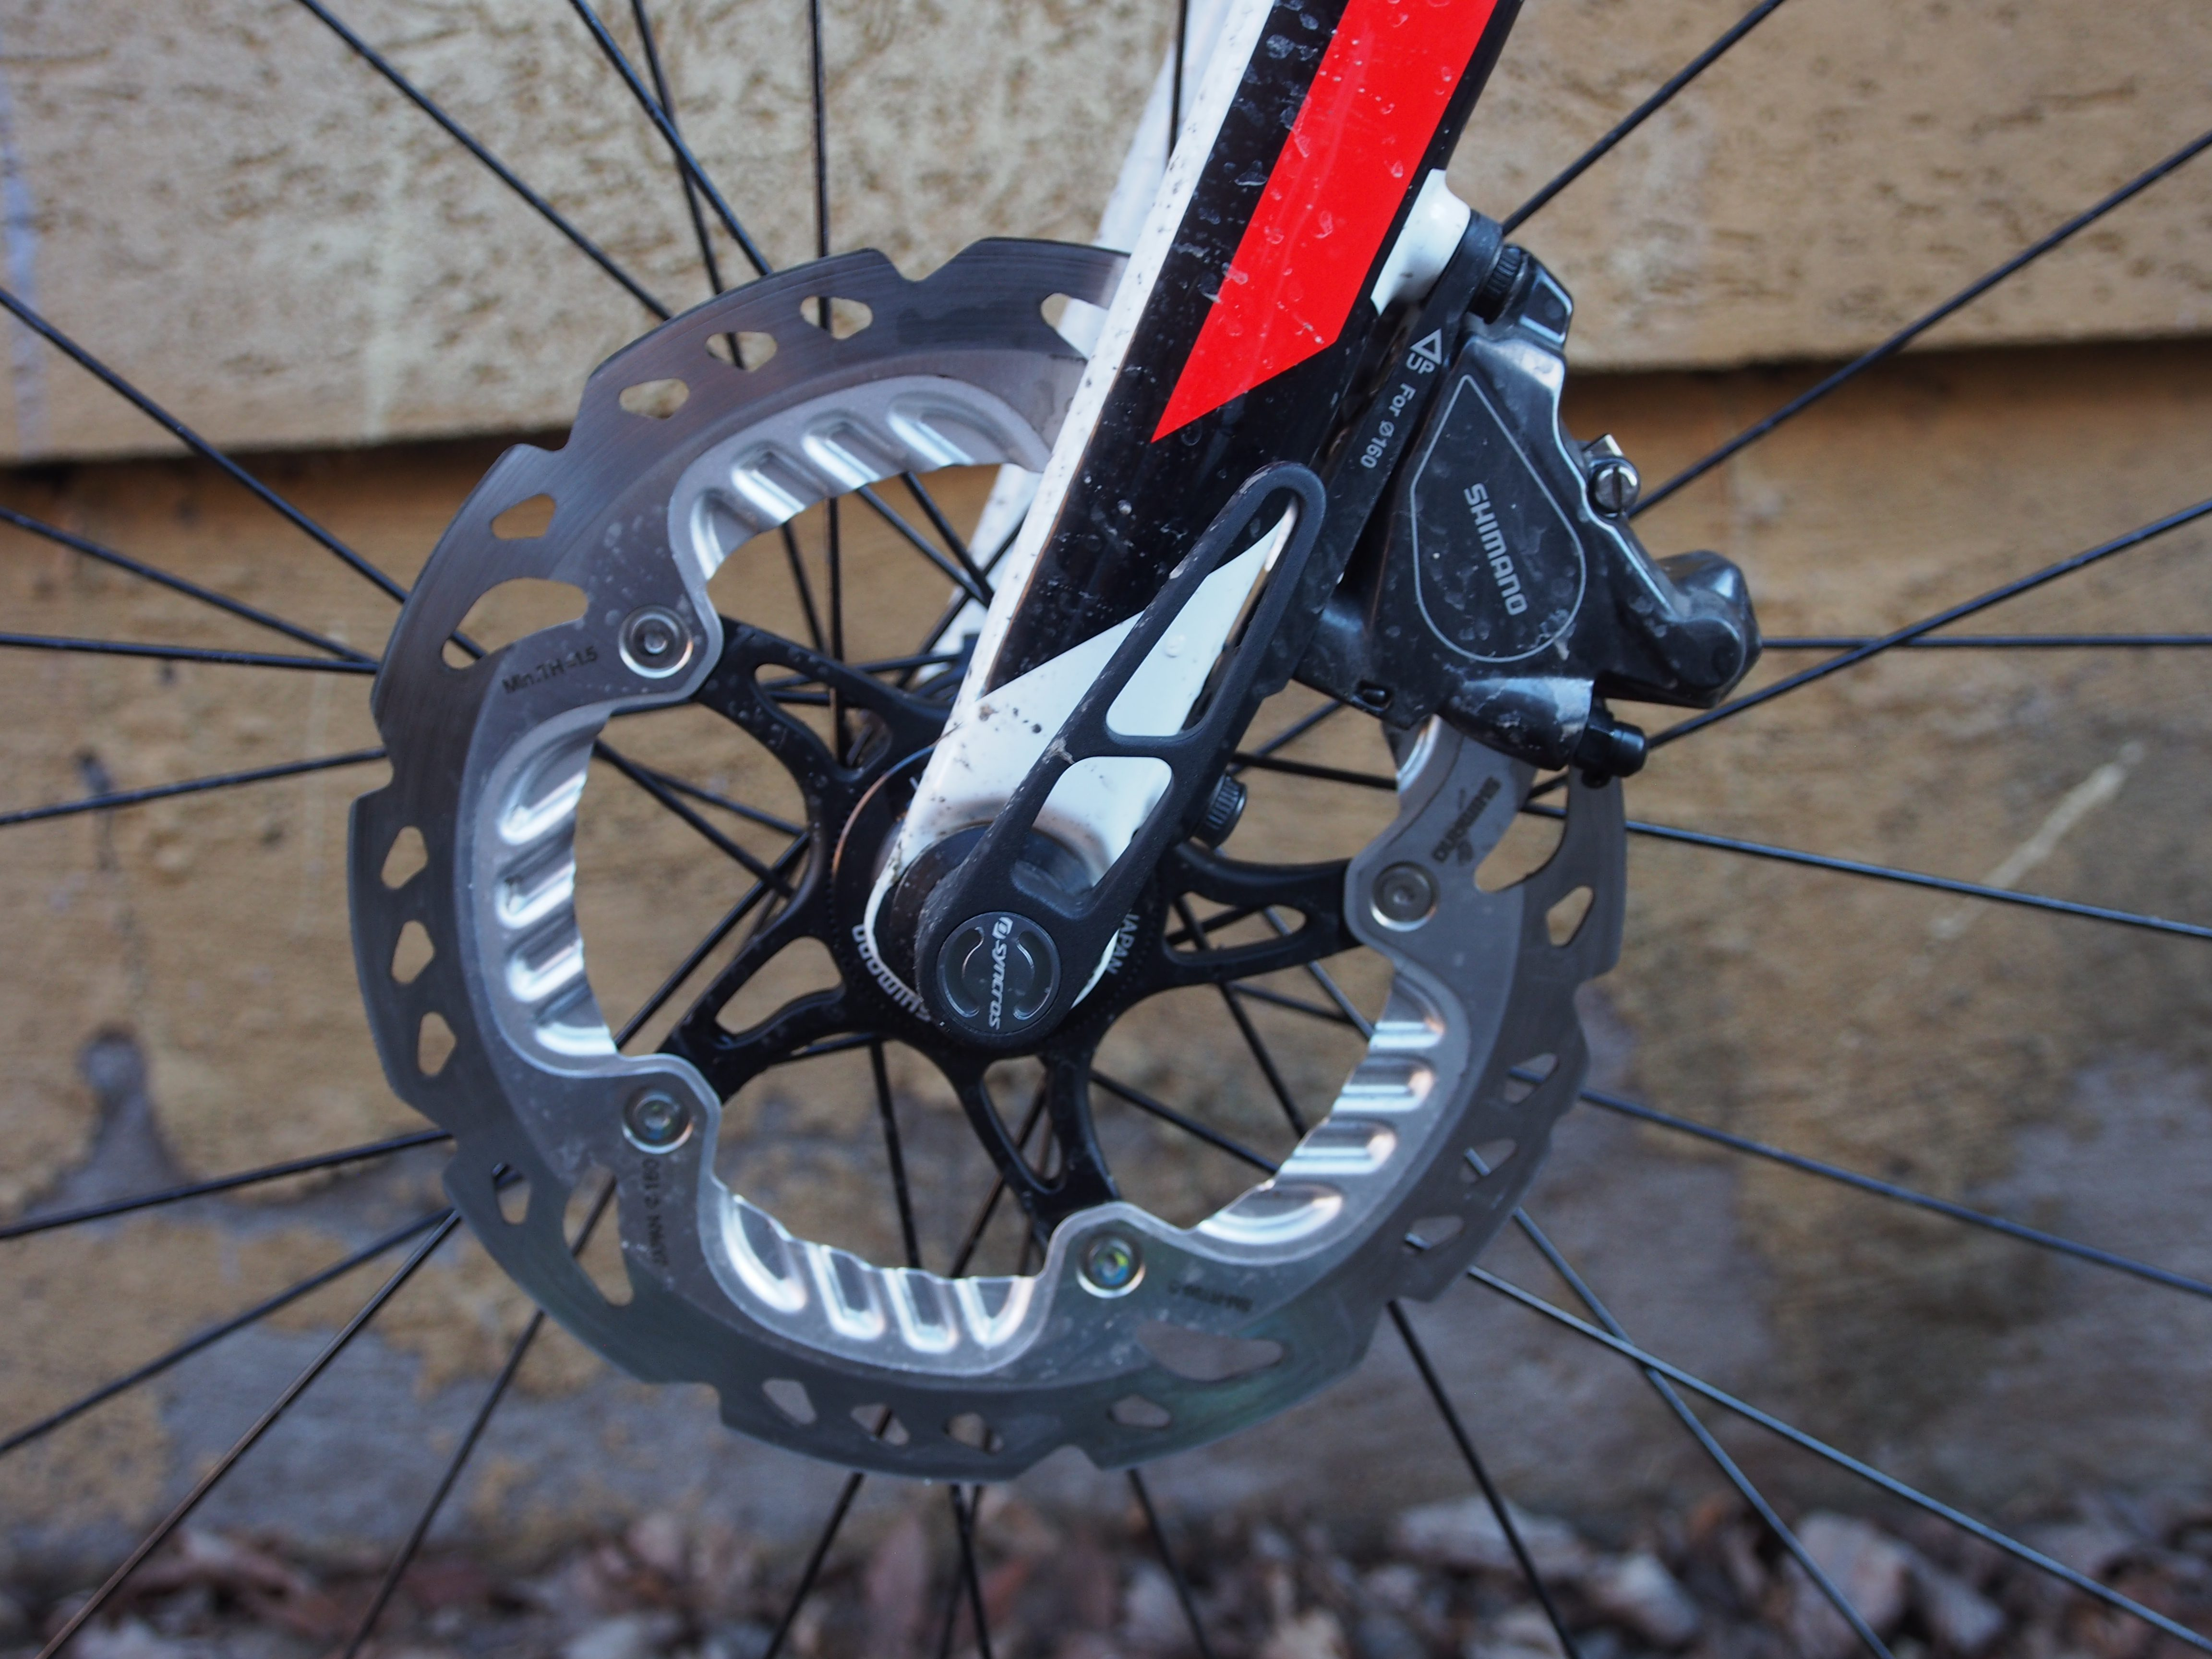 Did you hear that? What your bike is trying to tell you when